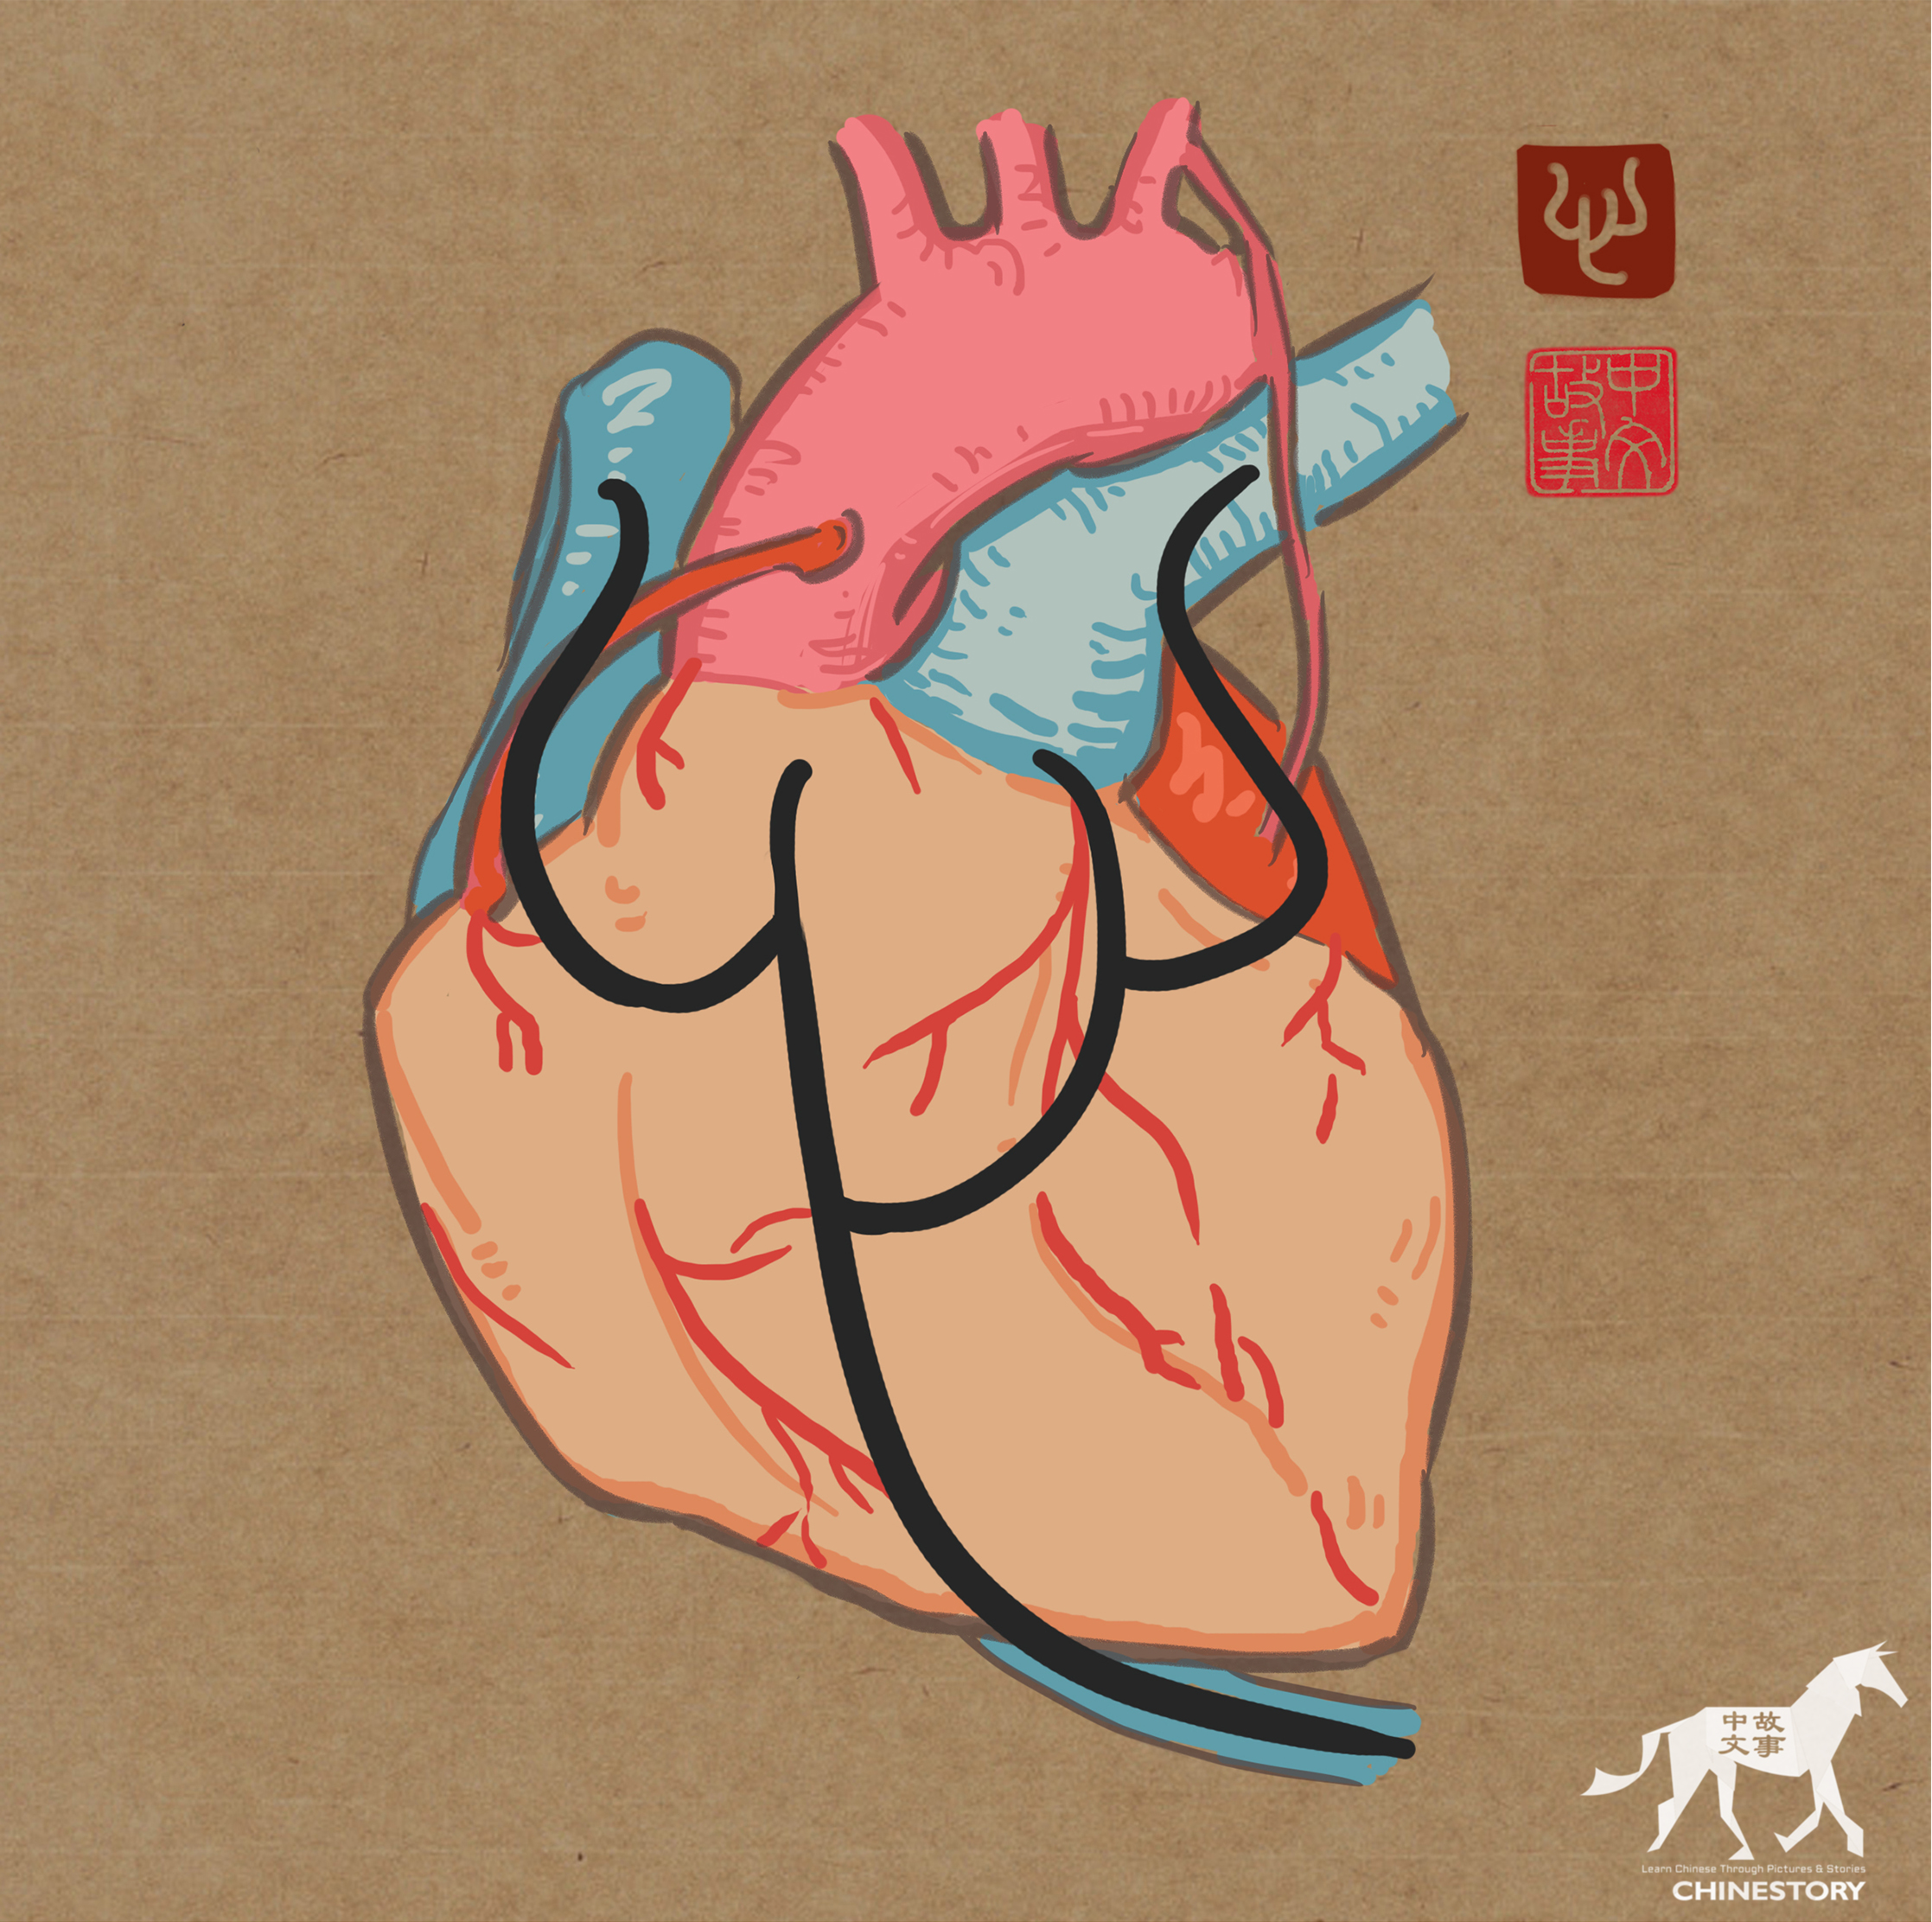 ⼼(xīn) - to devote one's heart(⼼)